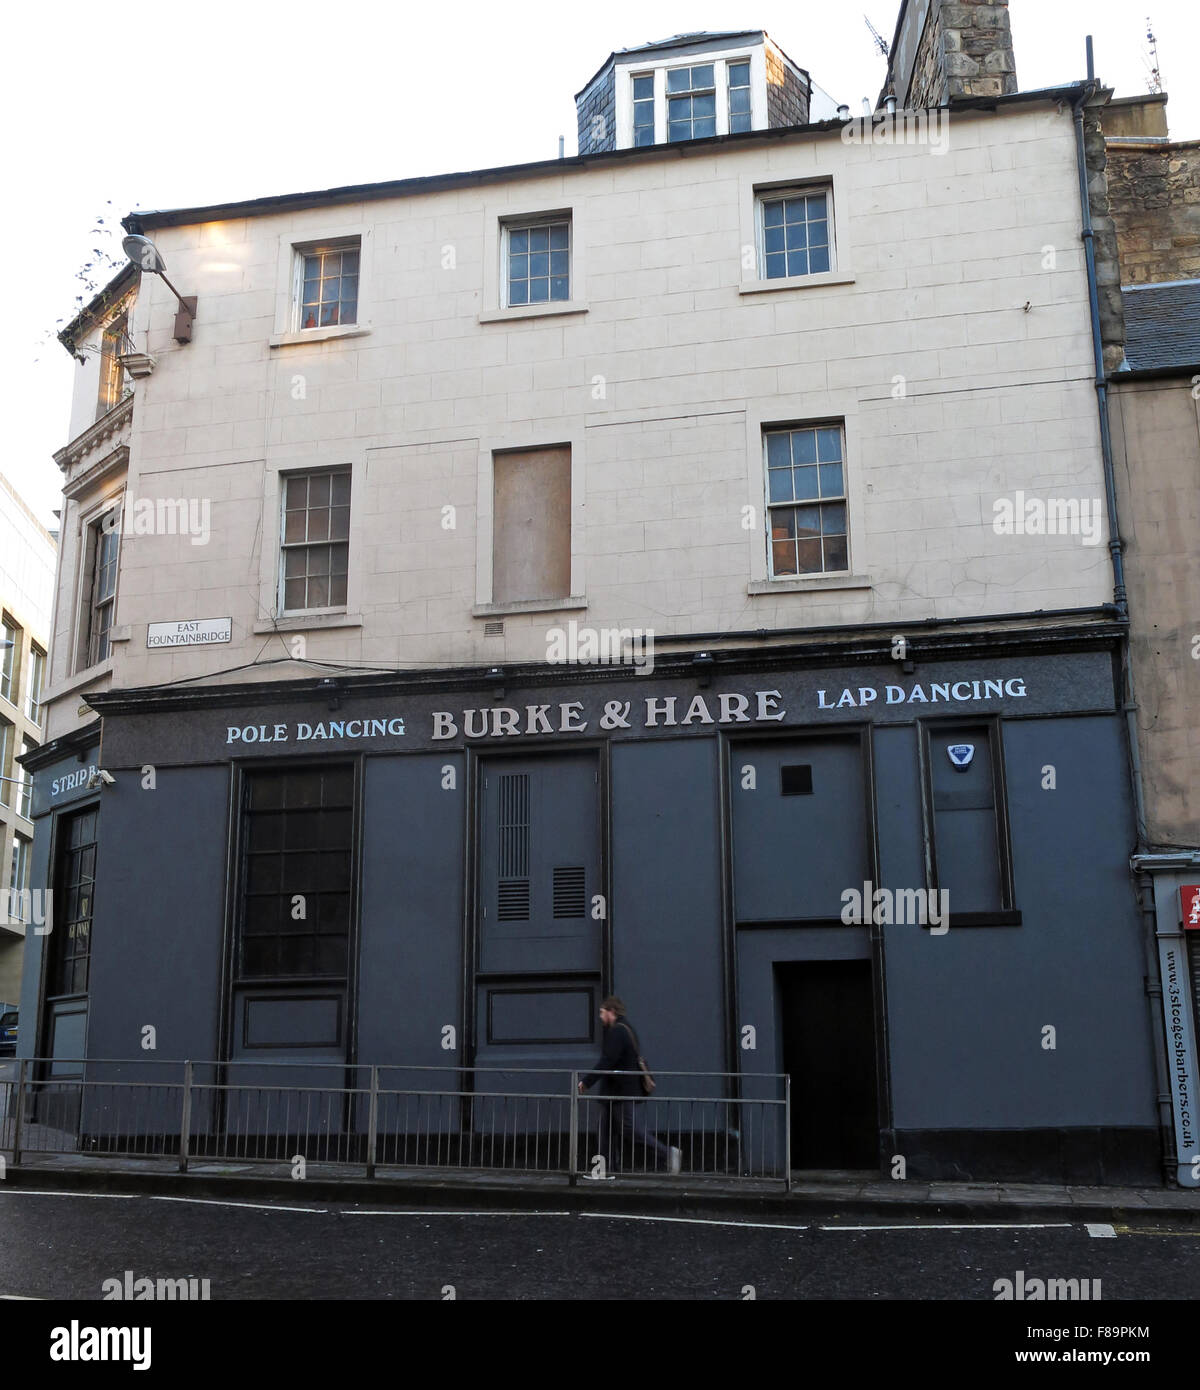 The Burke & Hare pole and lap dancing pub, 'Pubic Triangle', High Riggs, Edinburgh, Scotland, UK - Stock Image